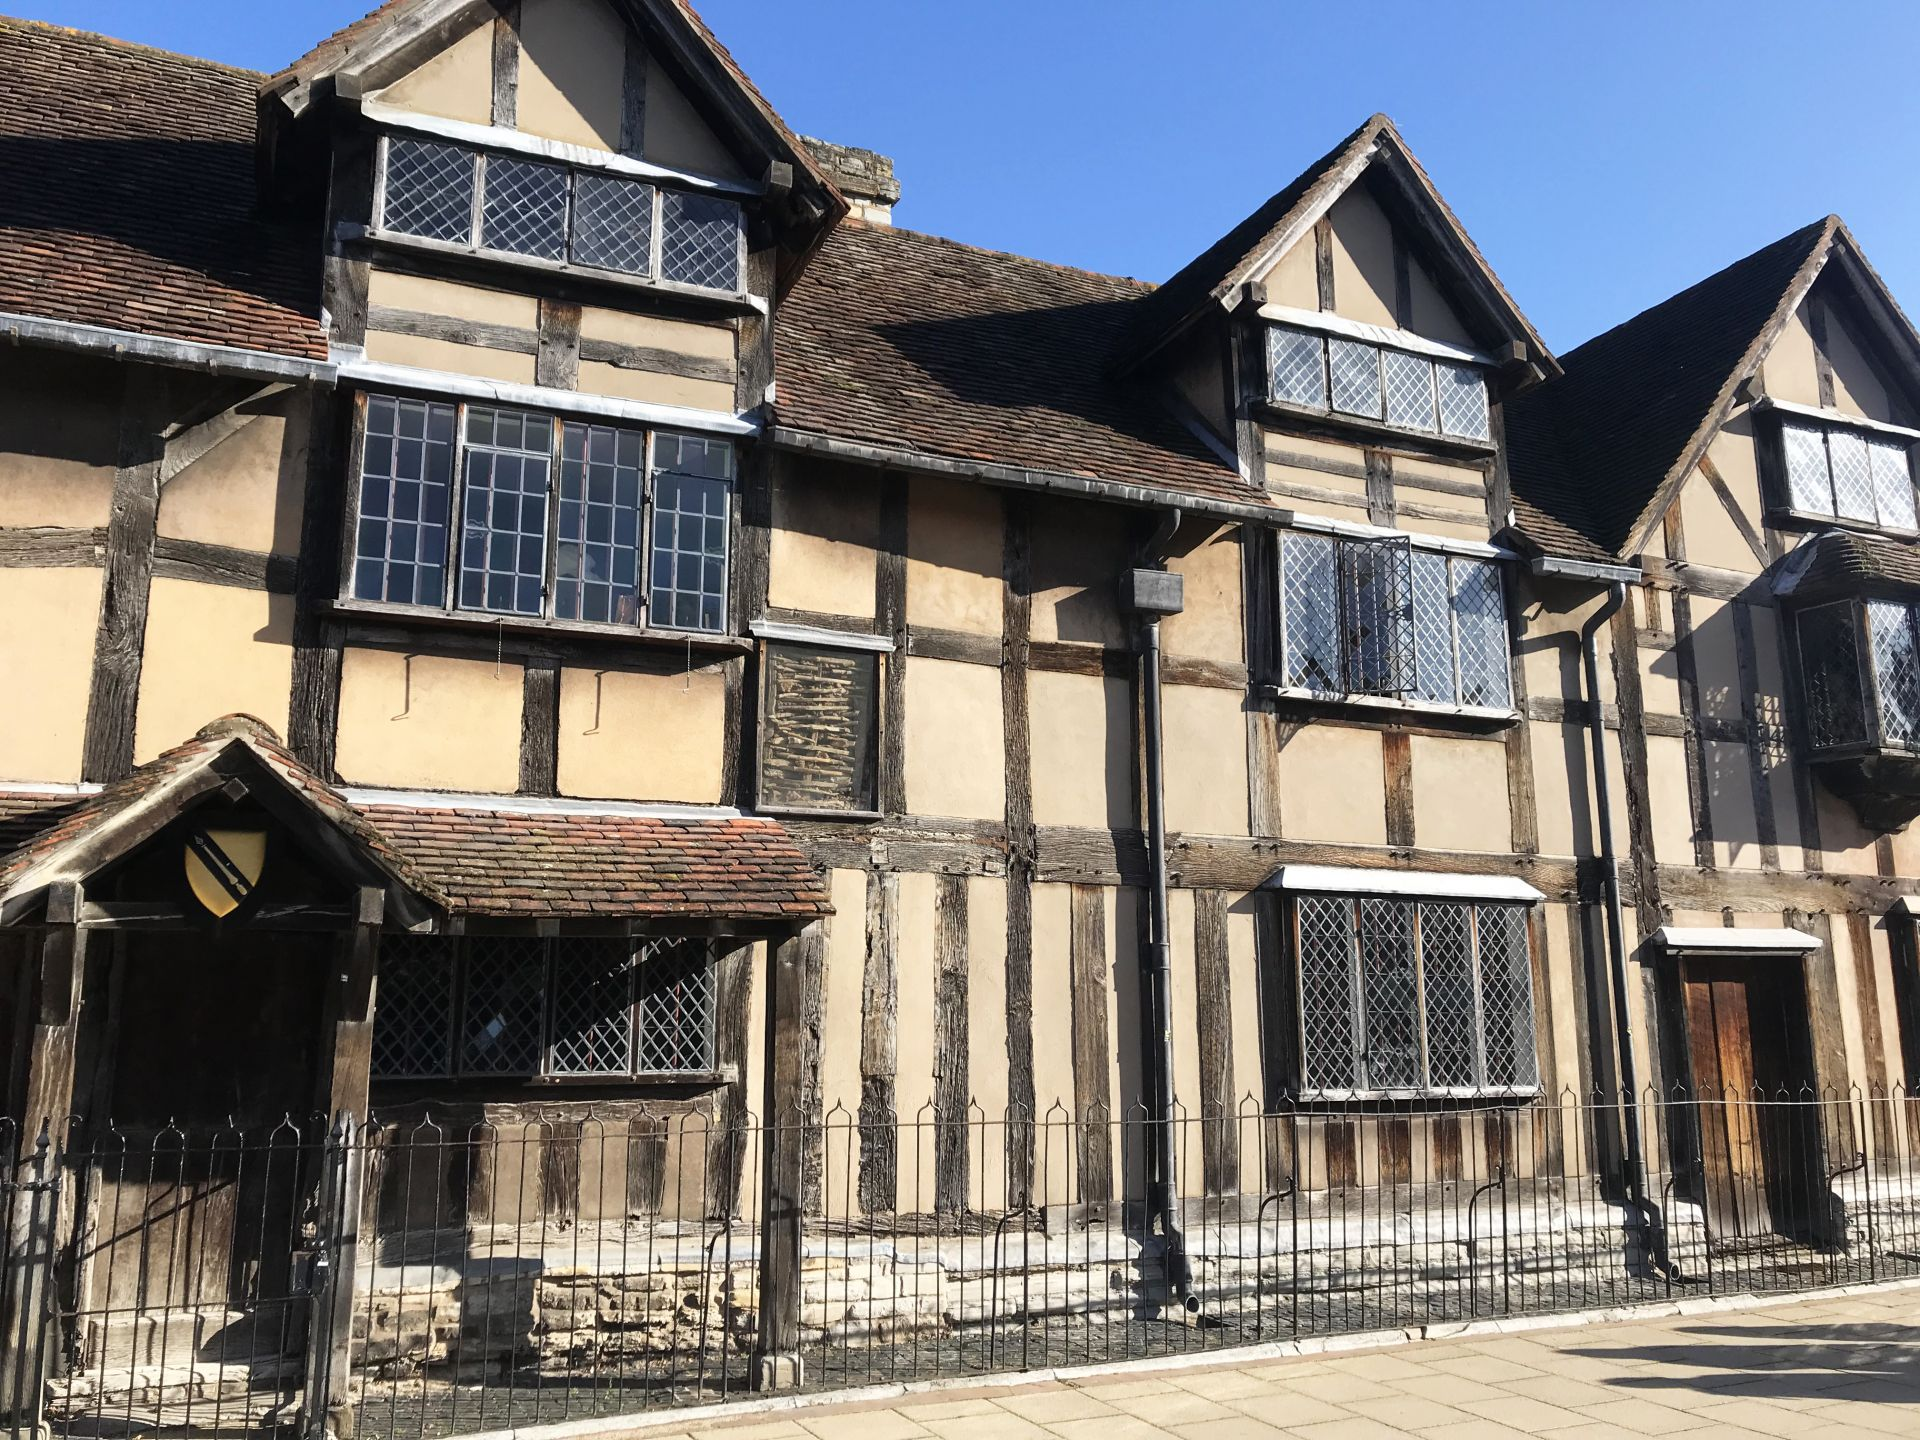 William Shakespeare's Birth House Stratford Upon Avon